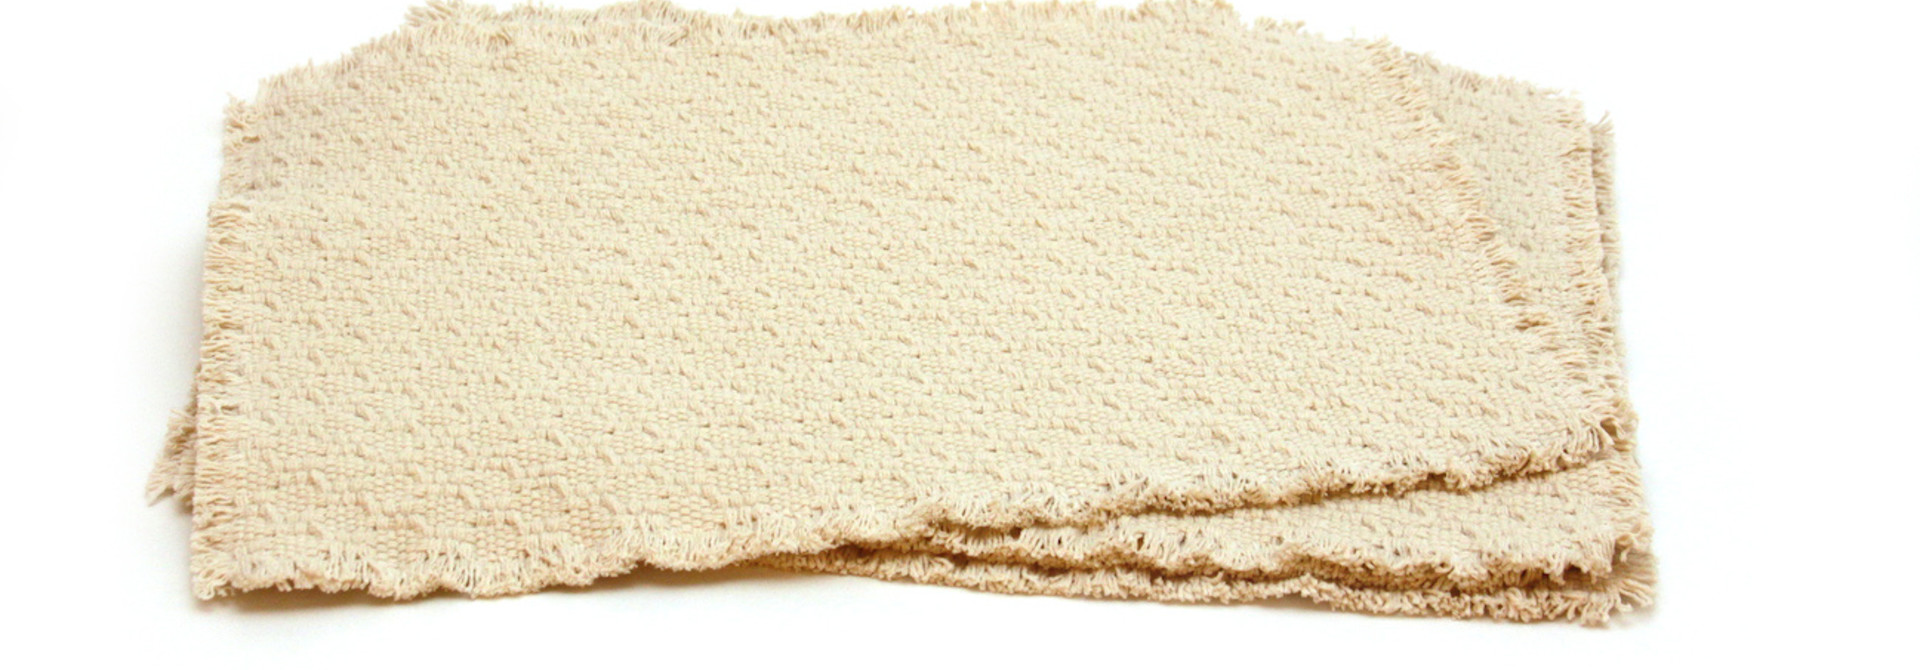 Placemat Honeycomb Natural